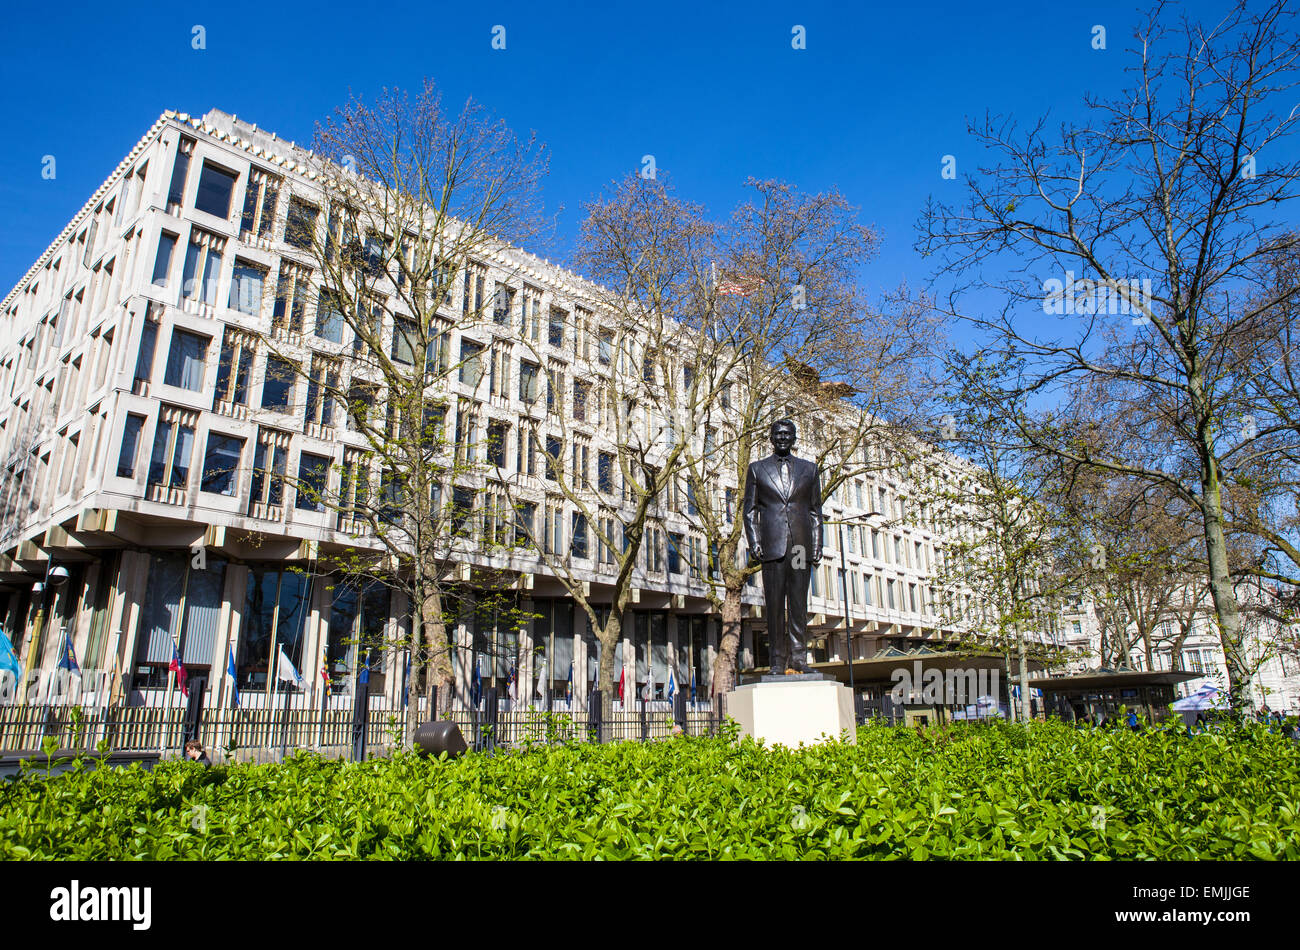 LONDON, UK - APRIL 14TH 2015: A statue of ex US President Ronald Reagan outside the US Embassy in Grosvenor Square Stock Photo